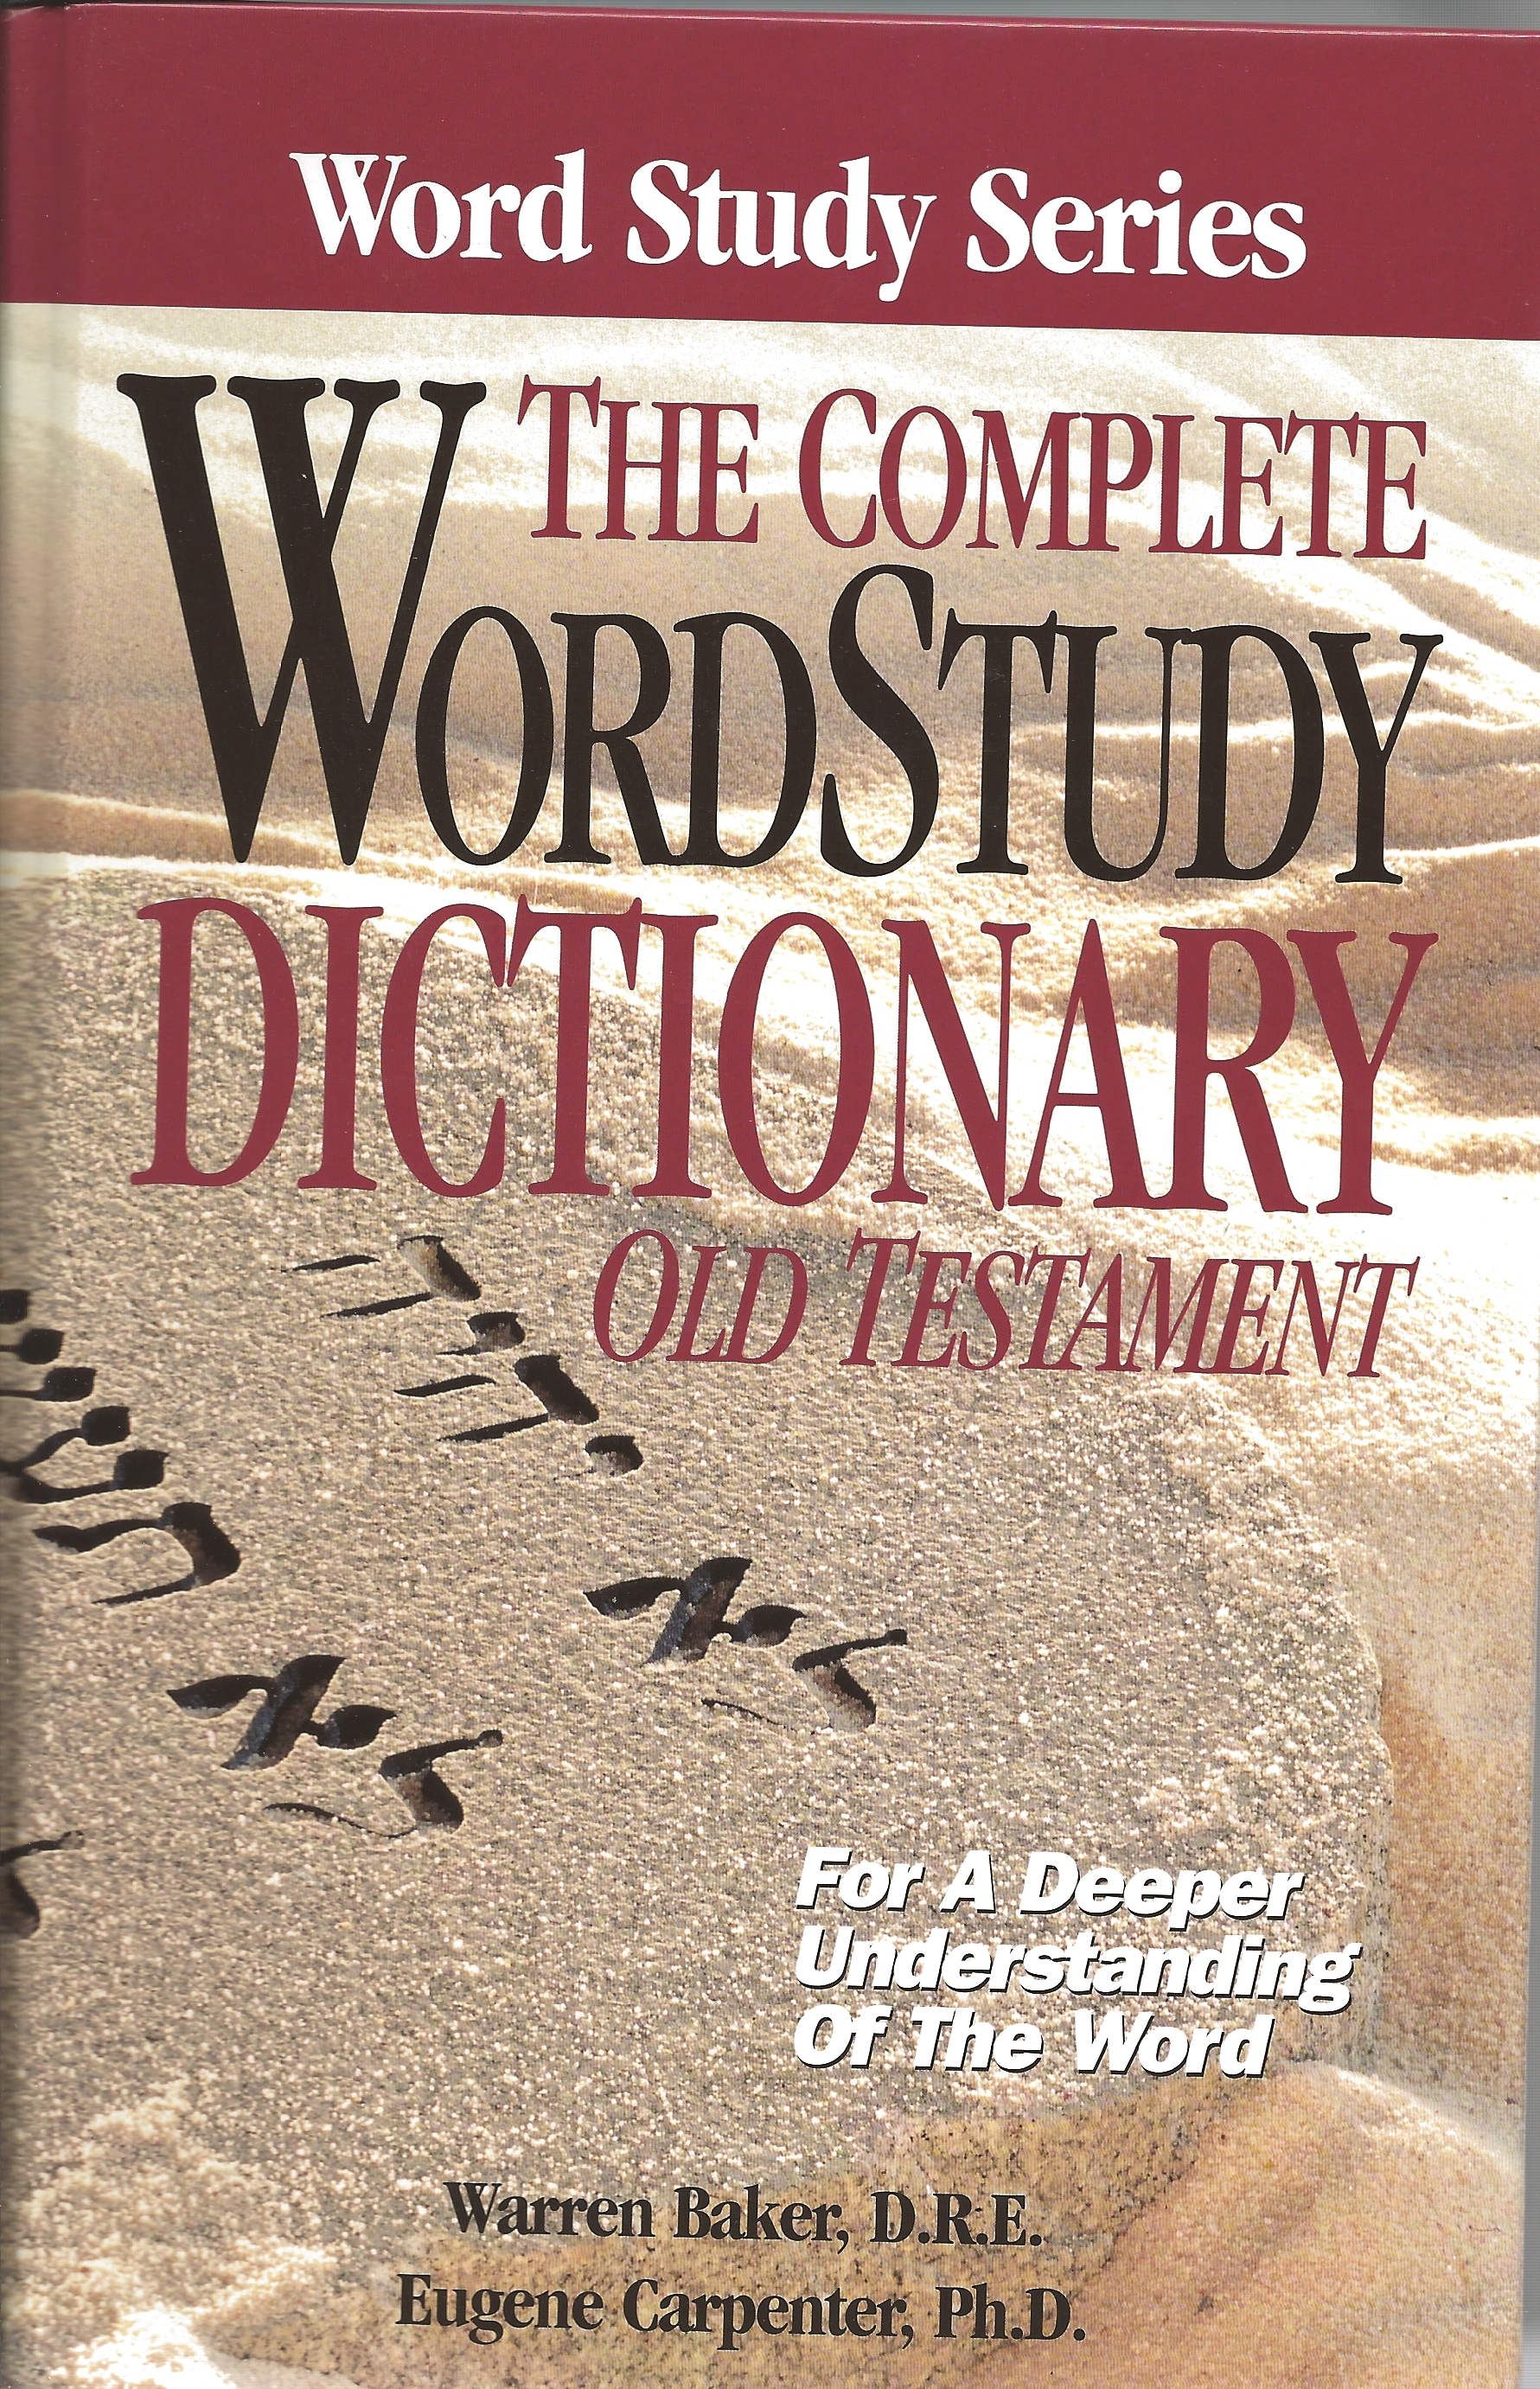 THE COMPLETE WORD STUDY DICTIONARY OLD TESTAMENT W. Baker